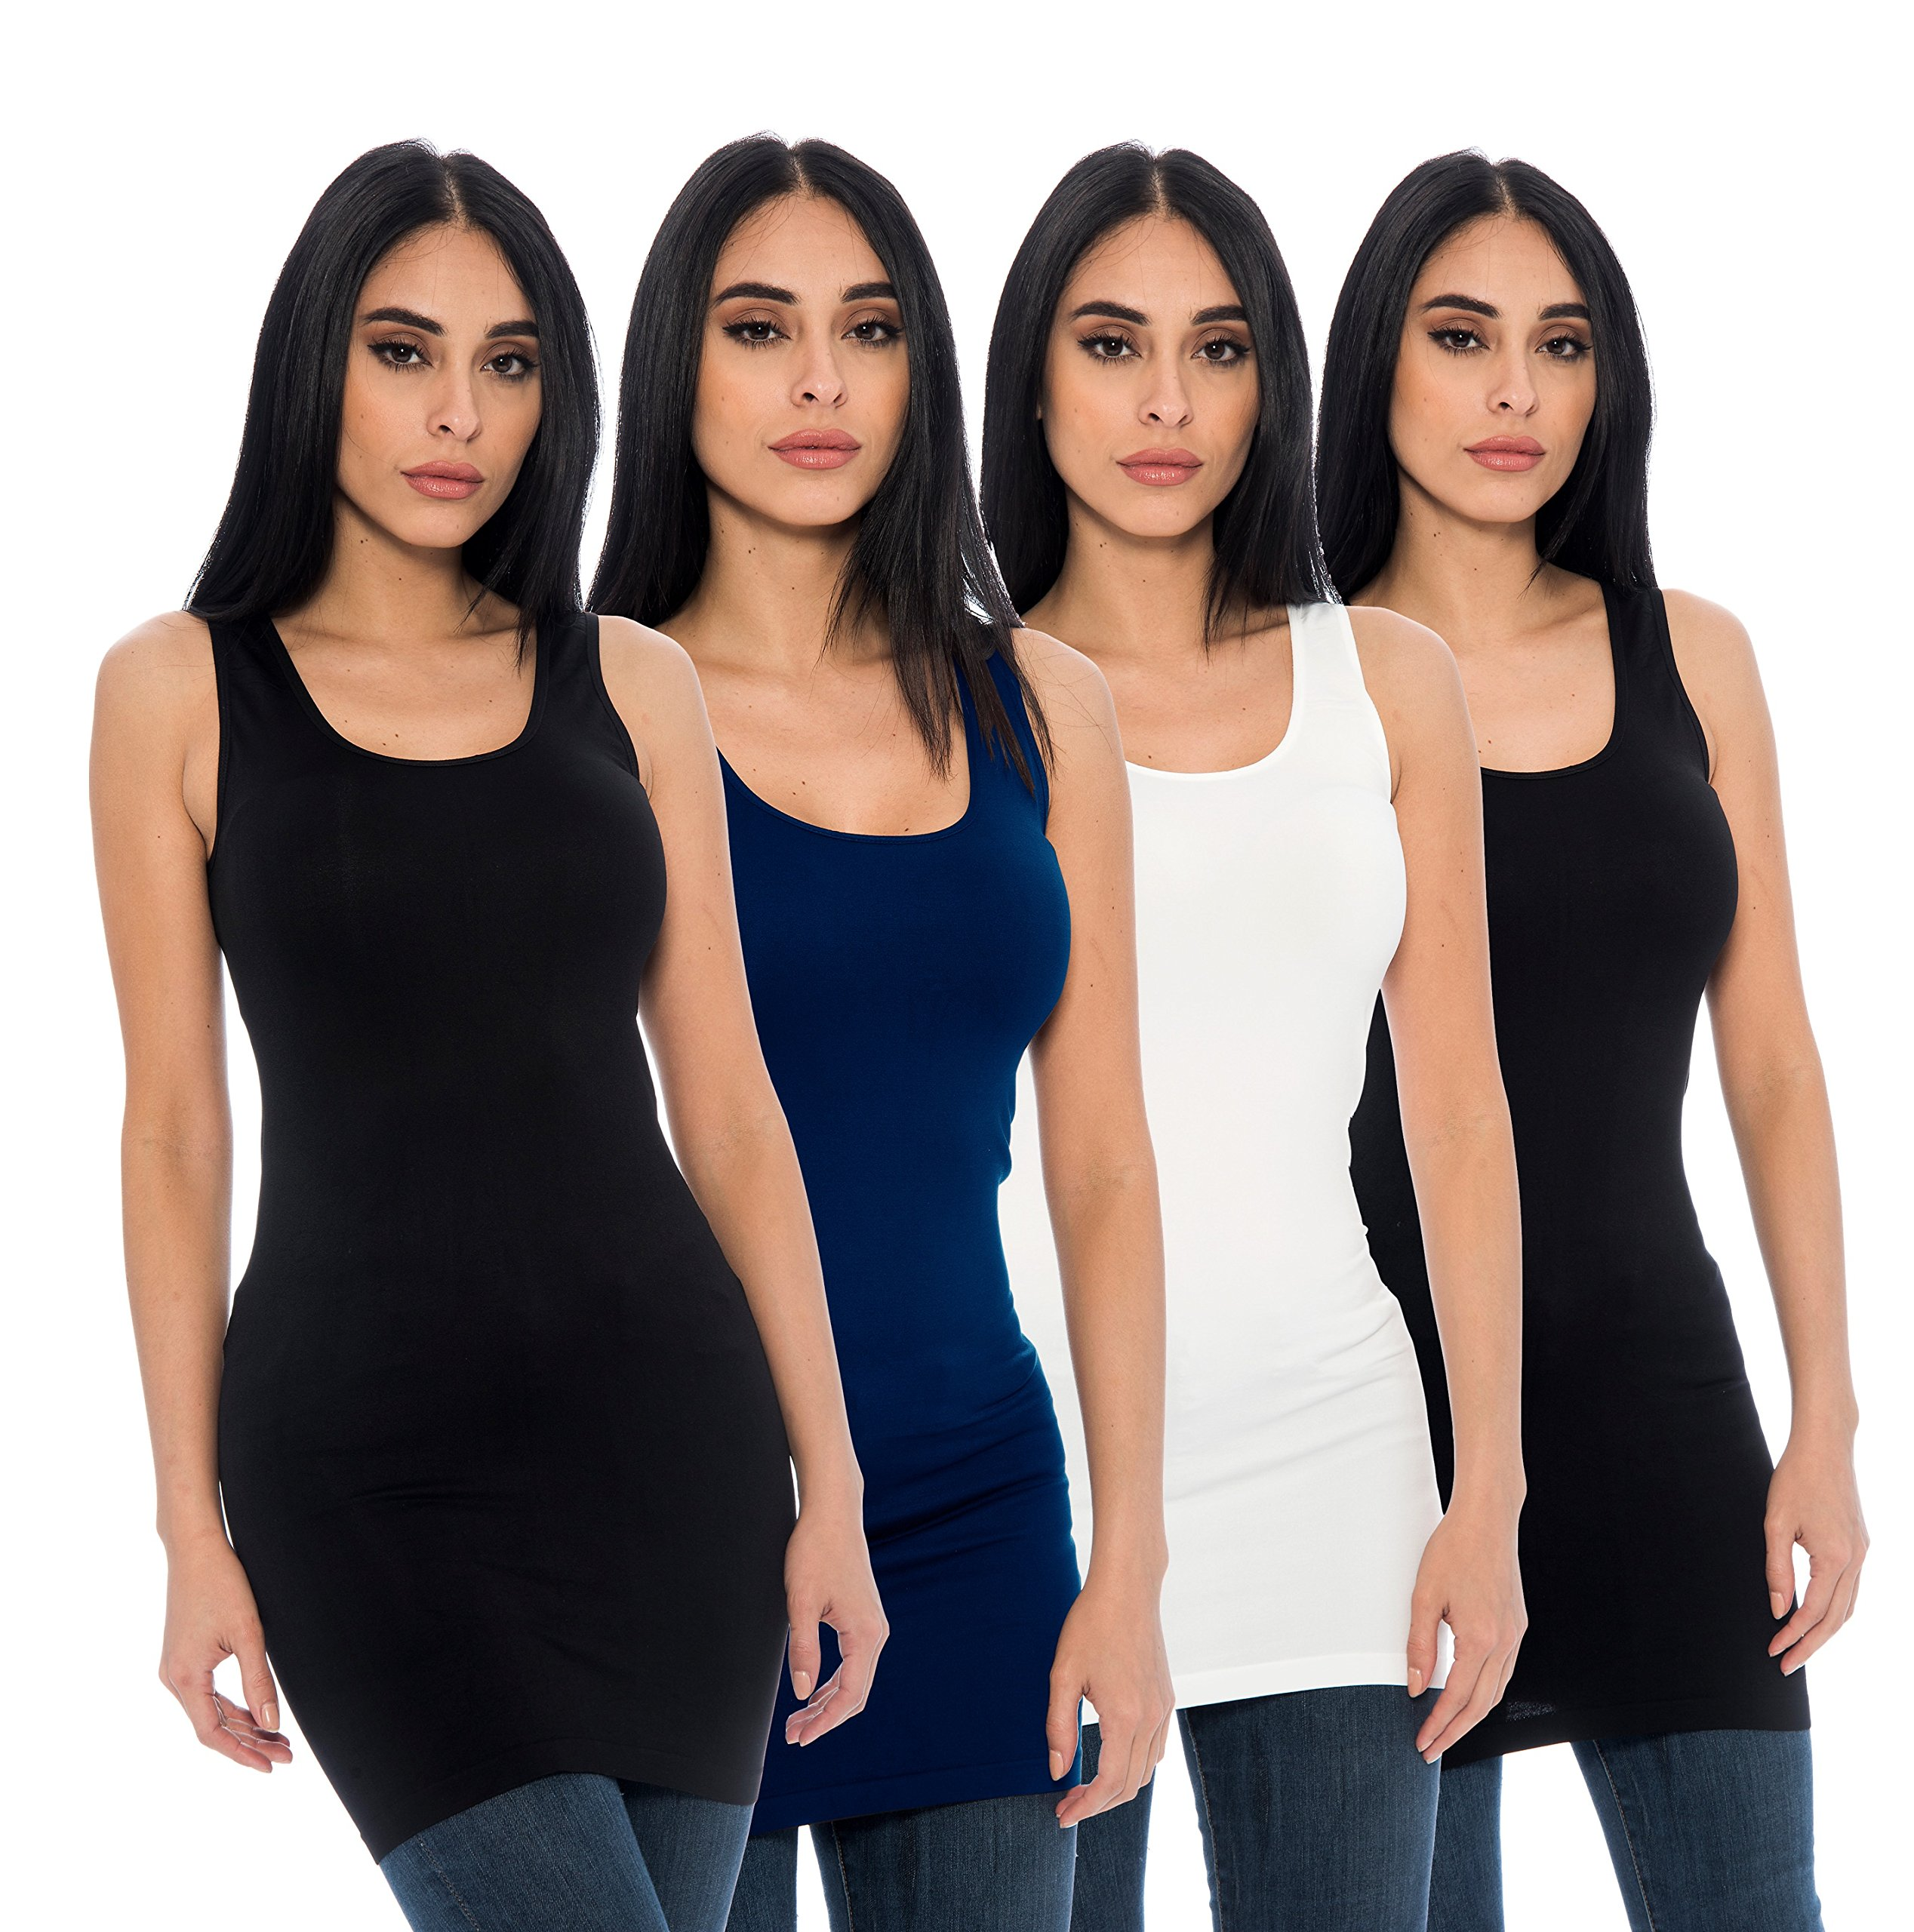 Unique Styles 4-Pack Ladies Seamless Stretch Fitted Long Tank Top Camisole Layering Top Regular and Plus Sizes (Plus Size, 2 Black, White, Navy) by Unique Styles